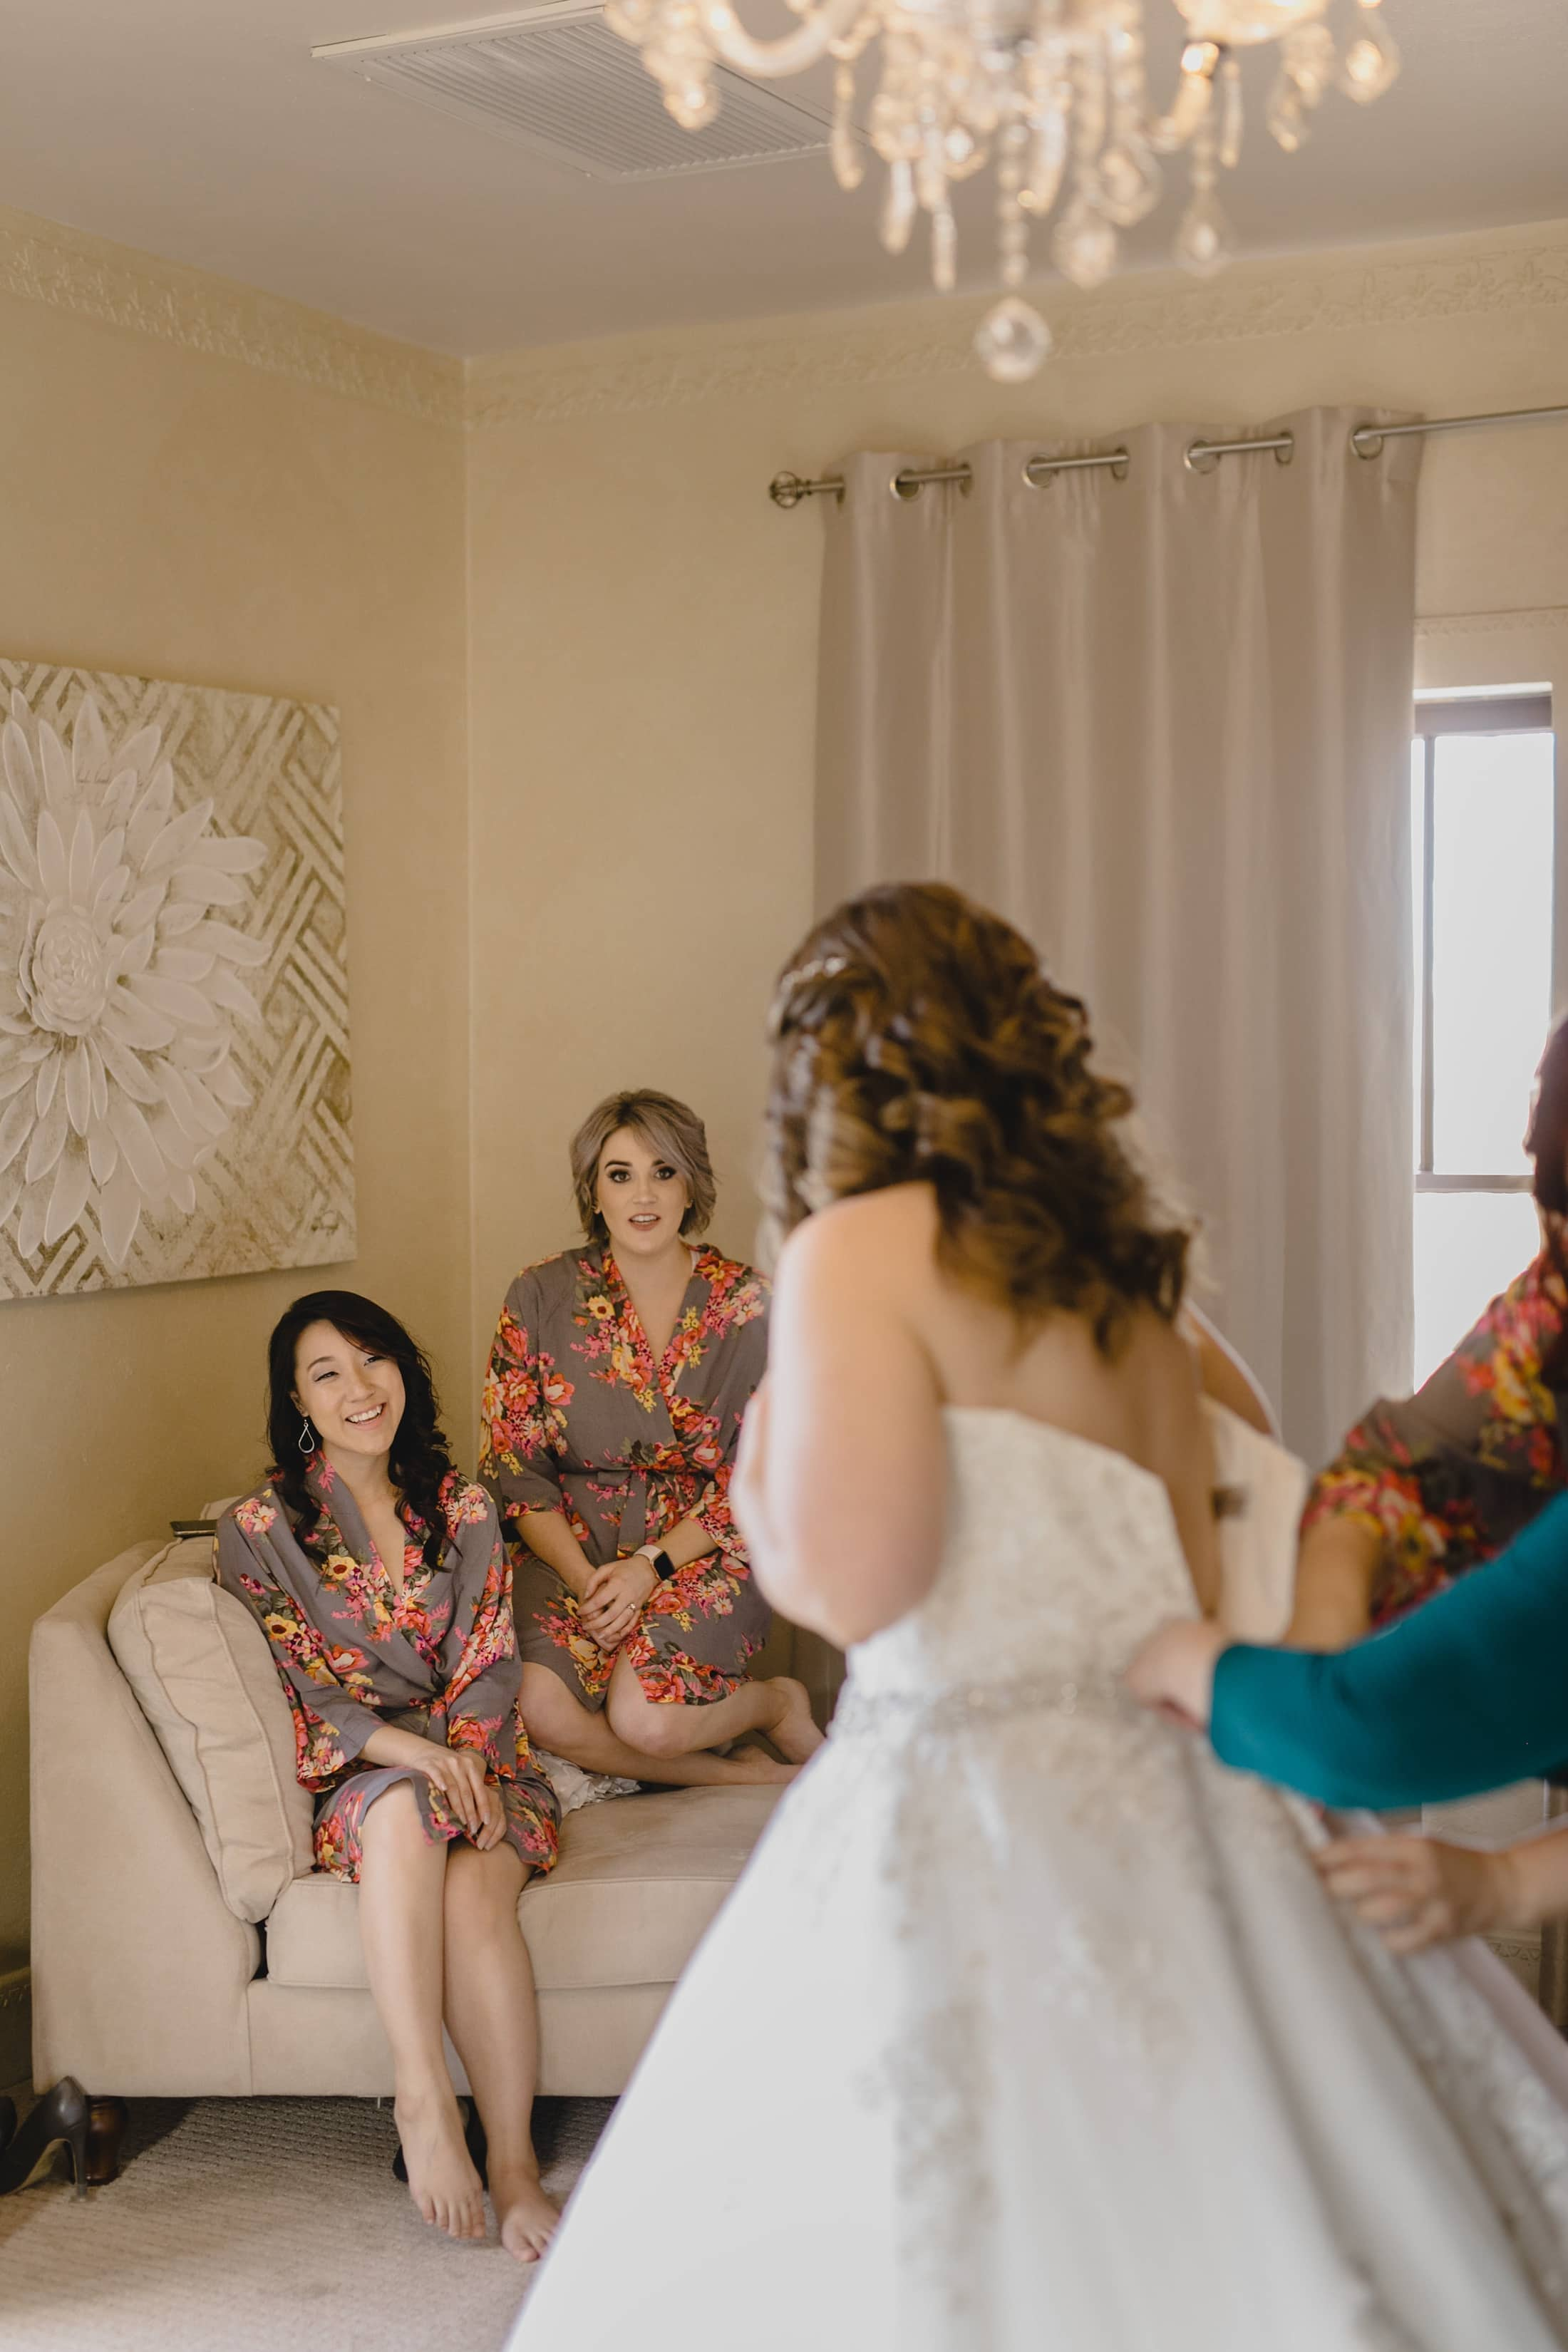 bridesmaids seeing bride in dress for first time Phoenix wedding photographer